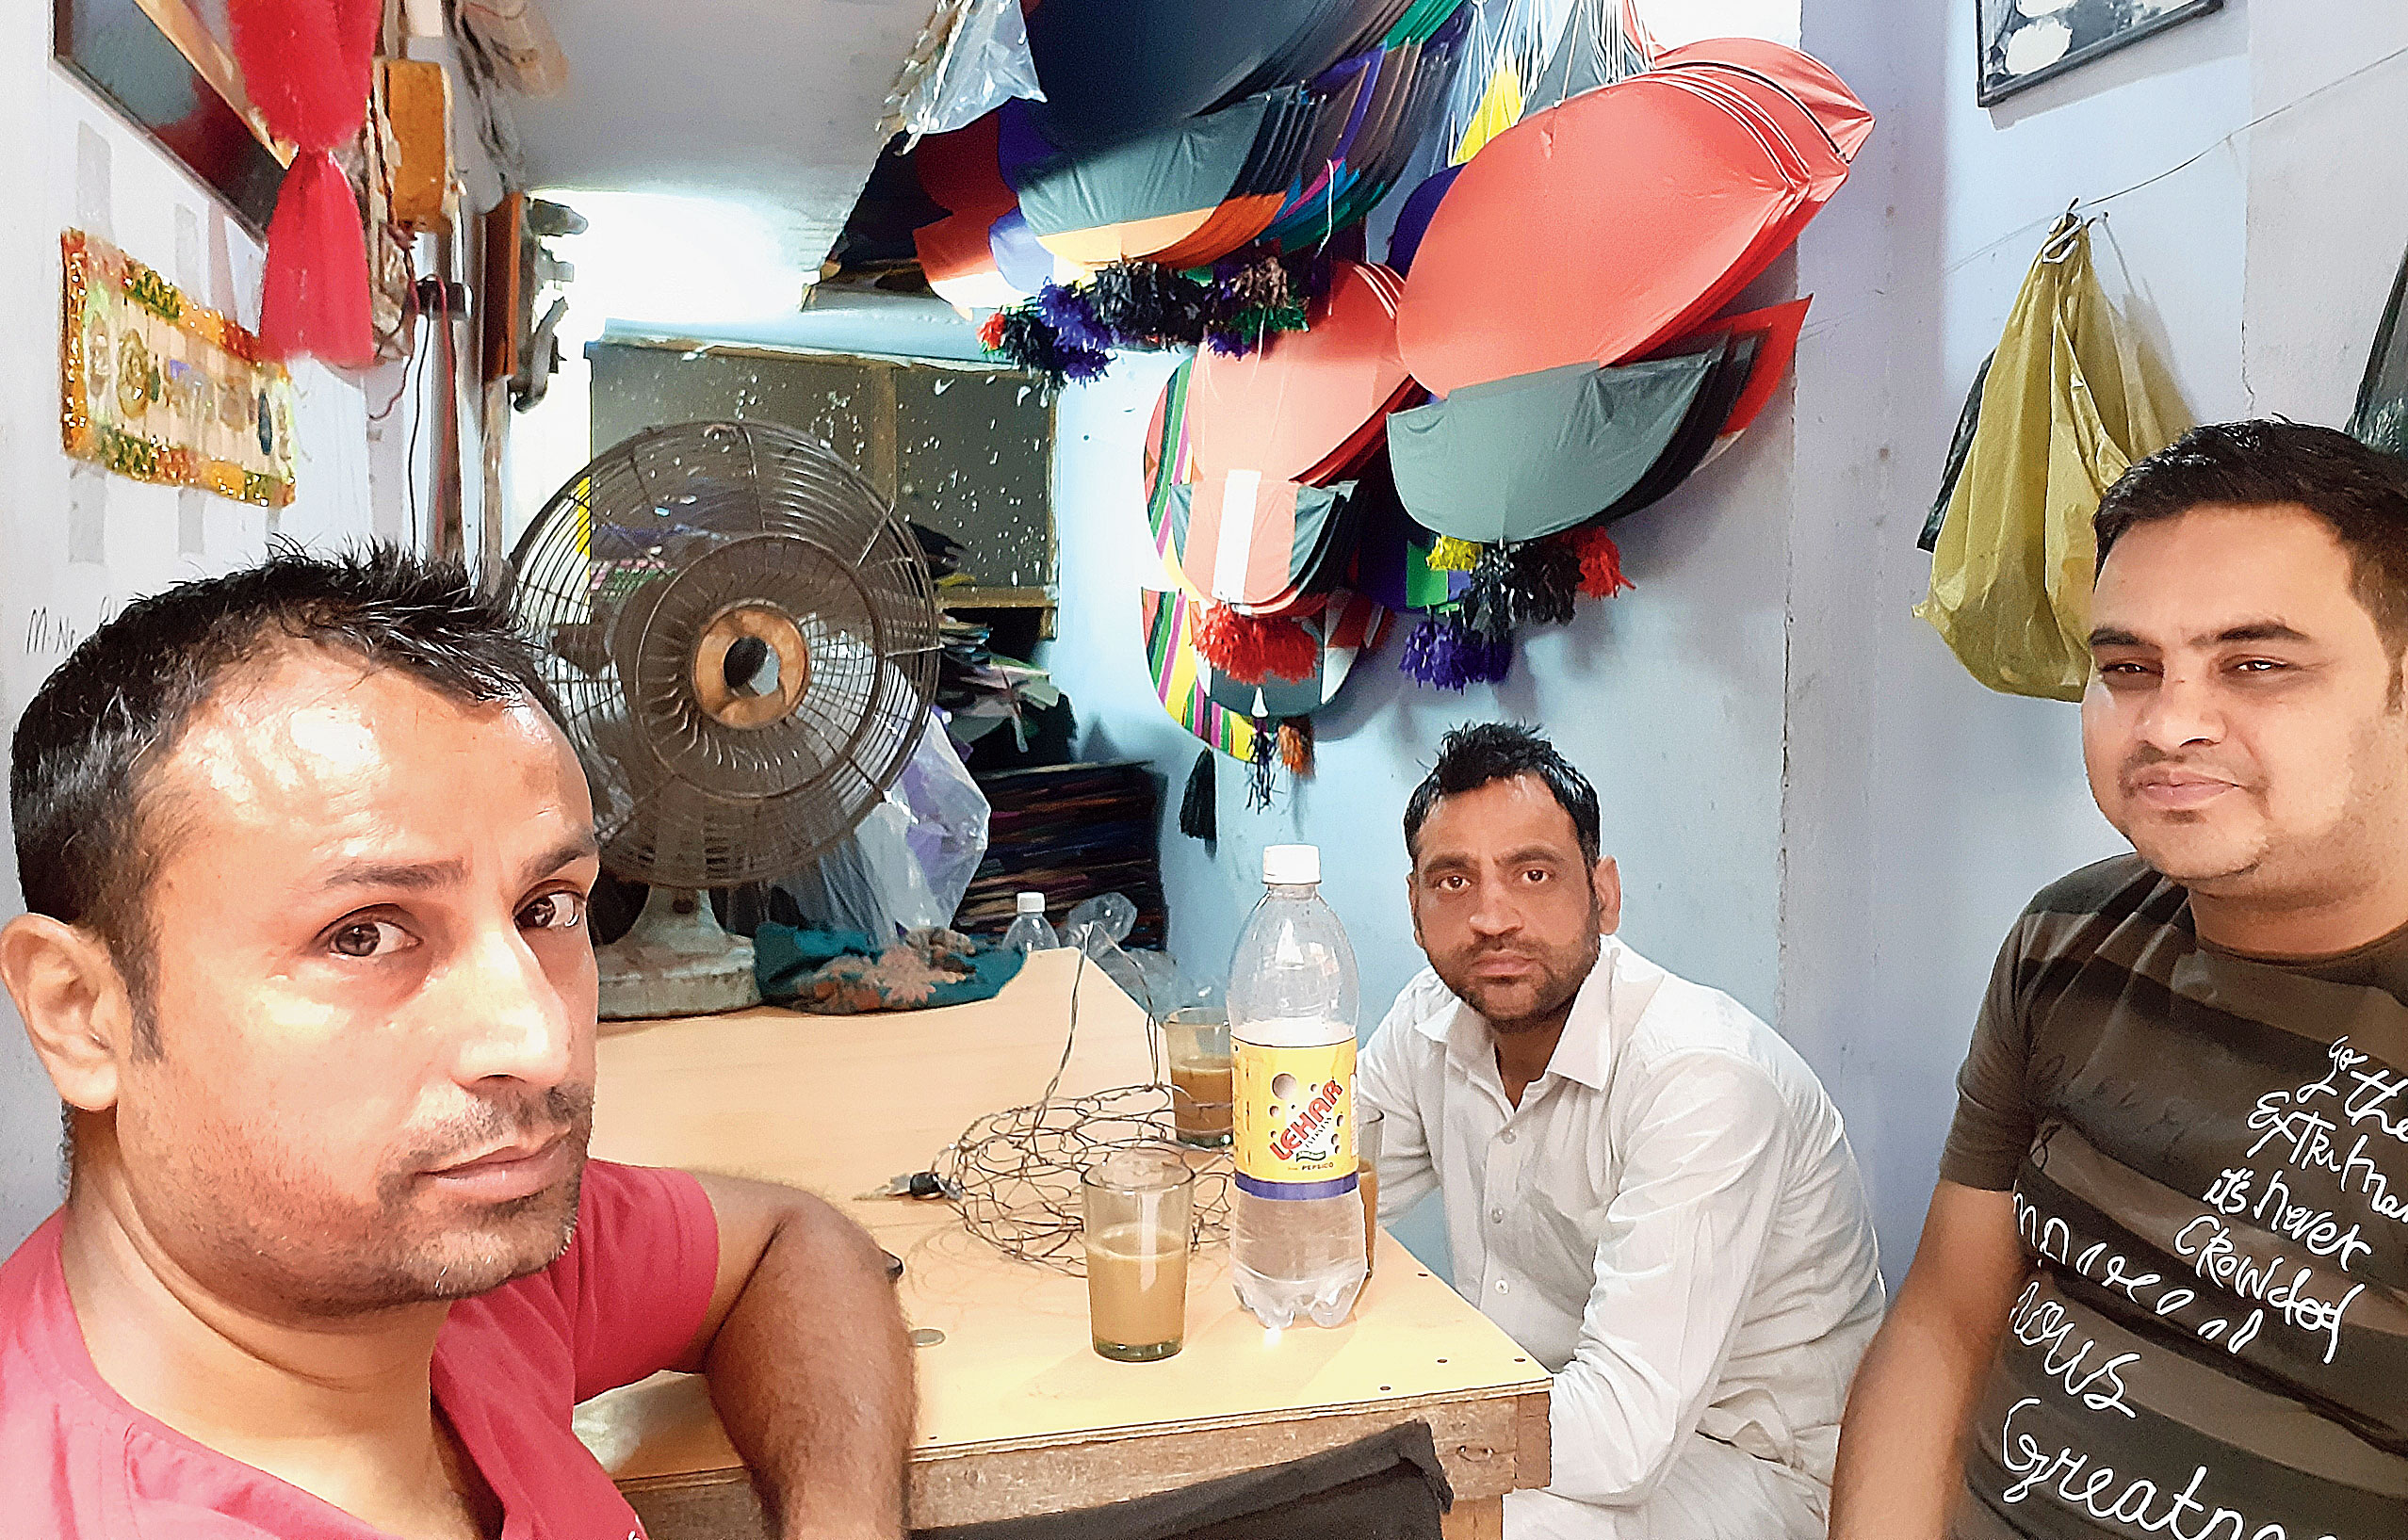 (From left) Kite maker Anil Kapoor, shawl seller Vikram Dhawan and textile trader Vikram Bhatia at Kapoor's shop in Chowk Passian, Amritsar, on Wednesday.